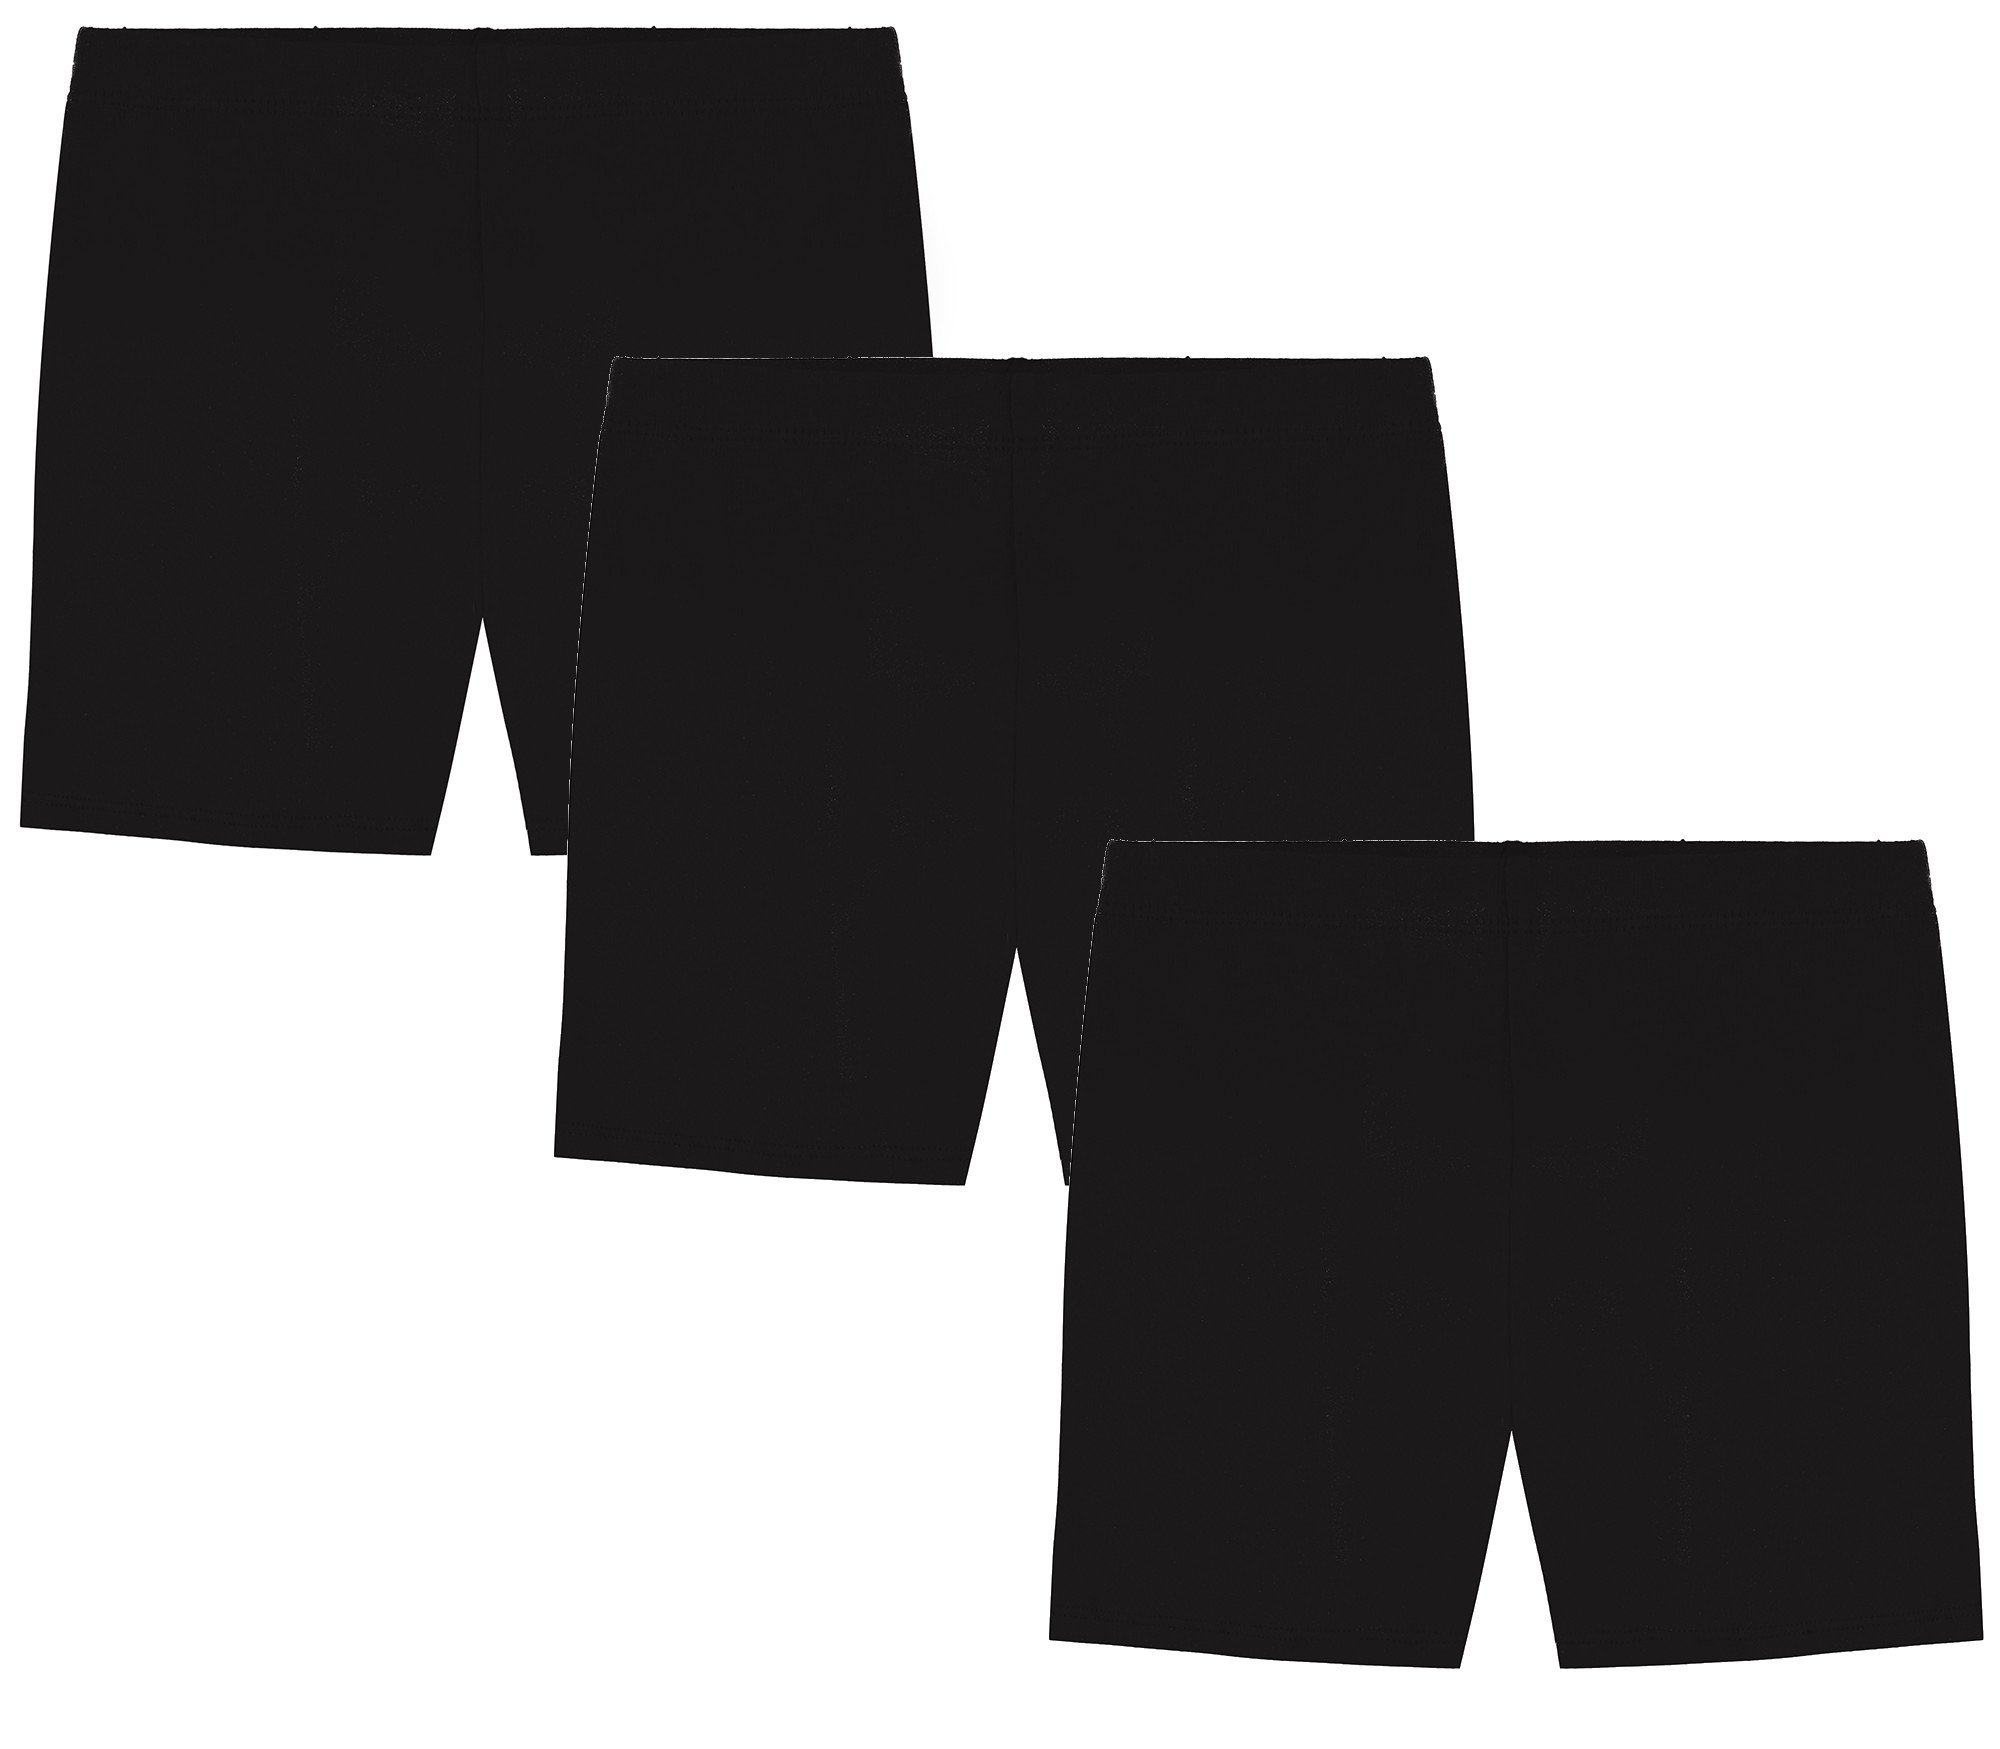 My Way Girls' Value Pack Solid Cotton Bike Shorts - All Black - 6